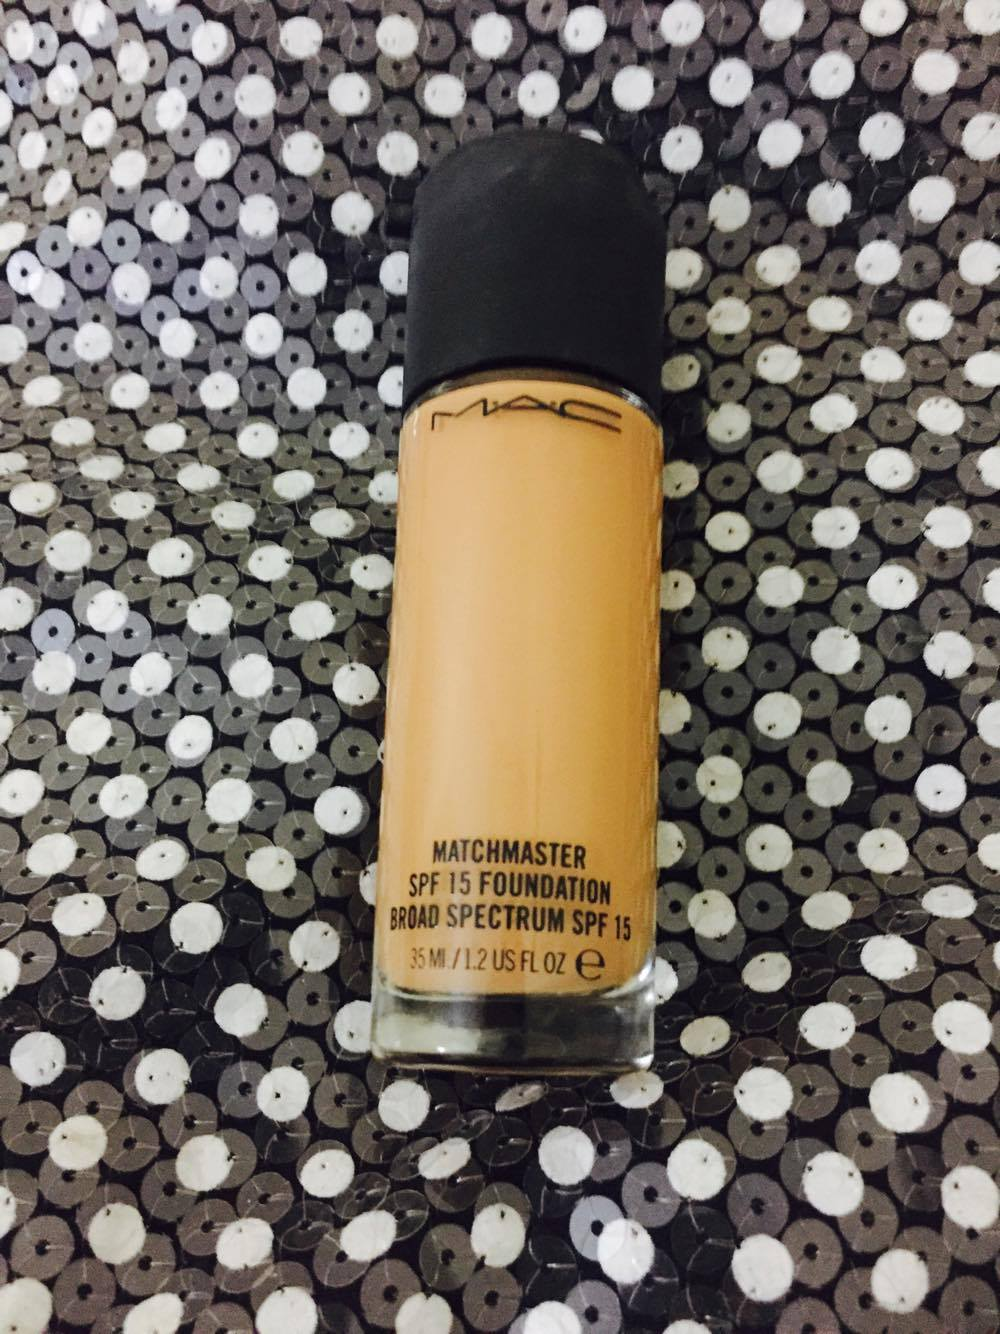 Mehpara Shahbaz: MAC Matchmaster Foundation SPF 15 Review and Pictures